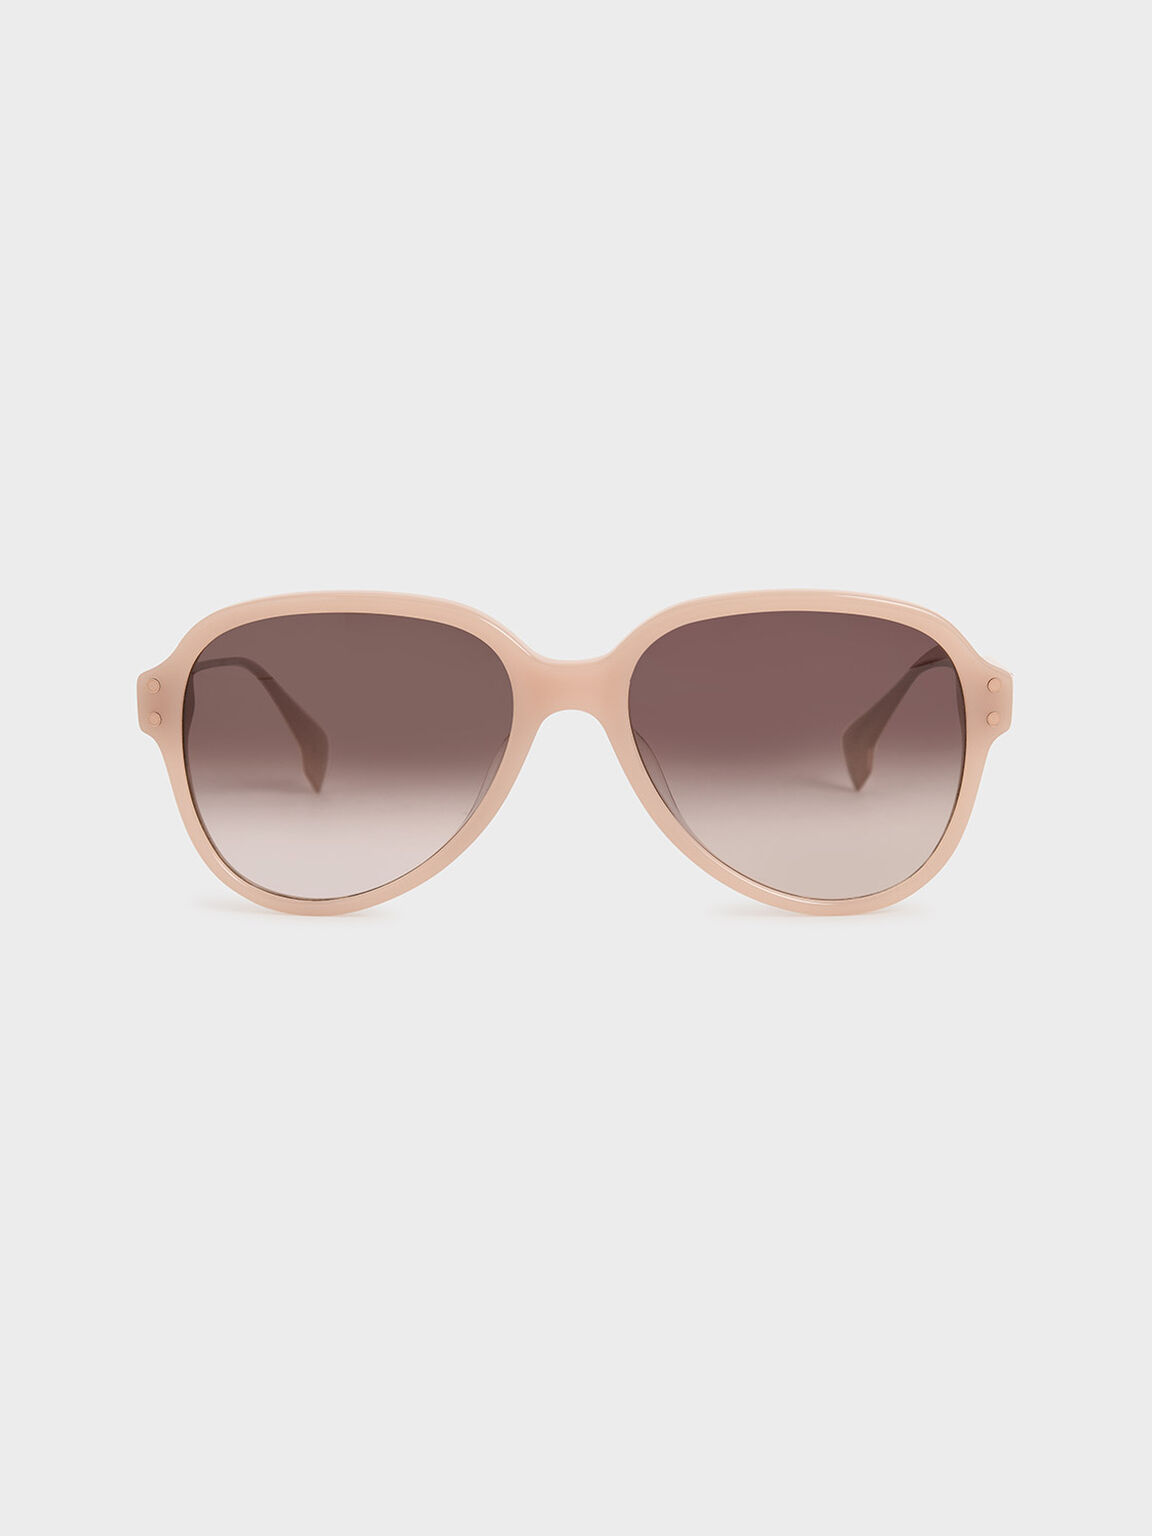 Acetate Aviator Sunglasses, Pink, hi-res